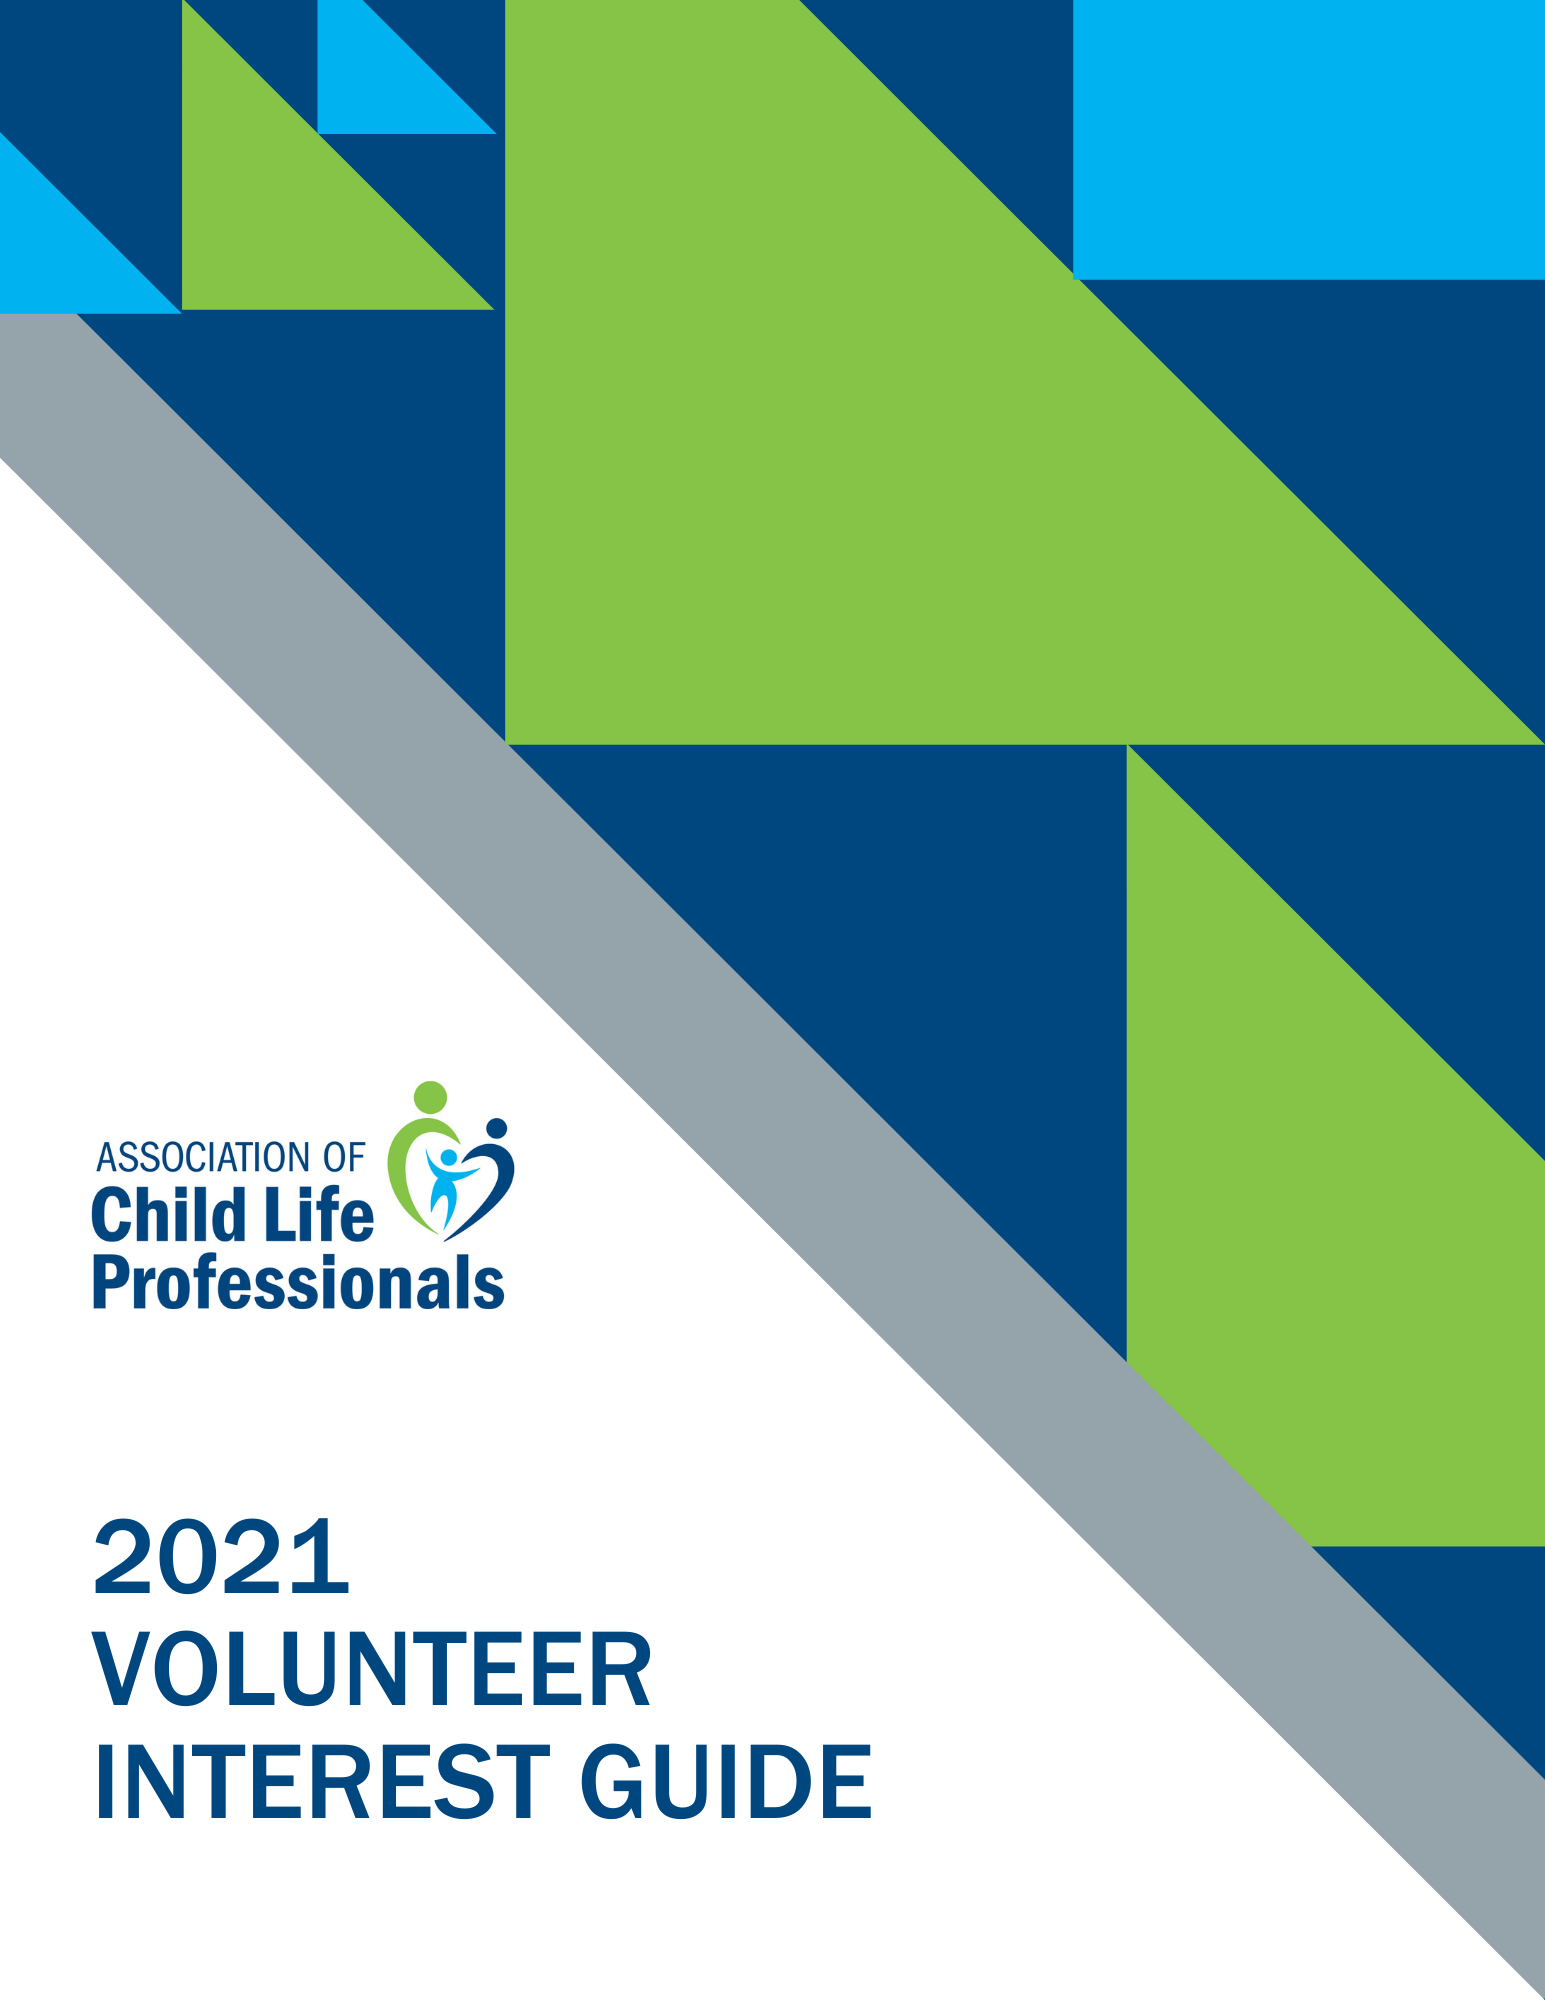 2021 Volunteer Interest Guide Cover Image